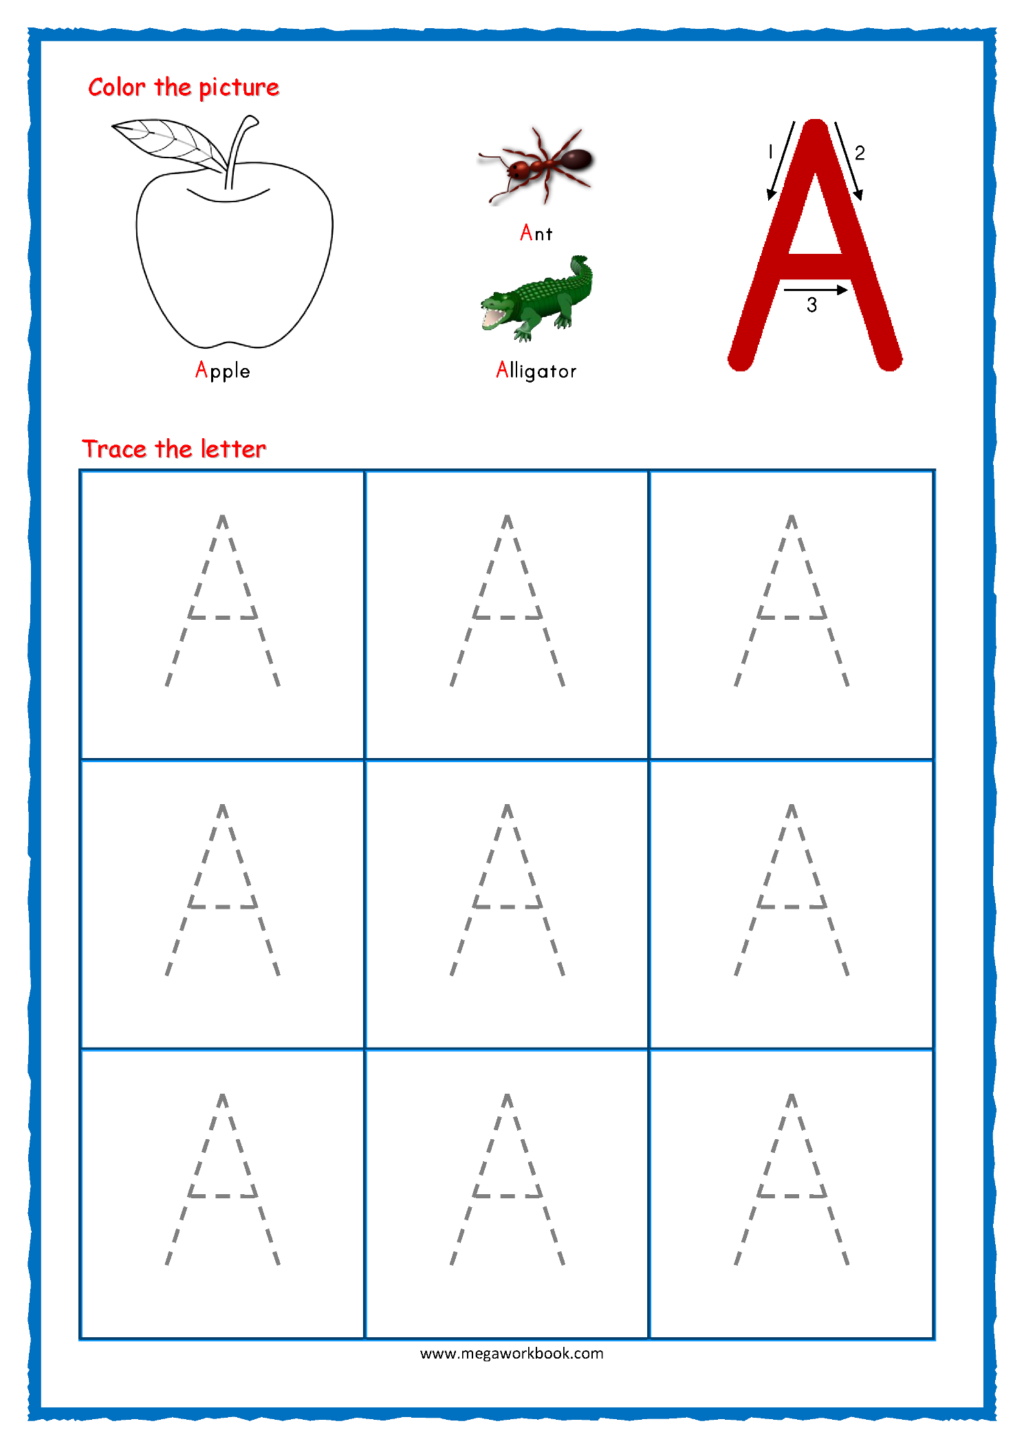 Worksheet ~ Capital Letter Tracing With Crayons 01 Alphabet in Alphabet Letter Trace